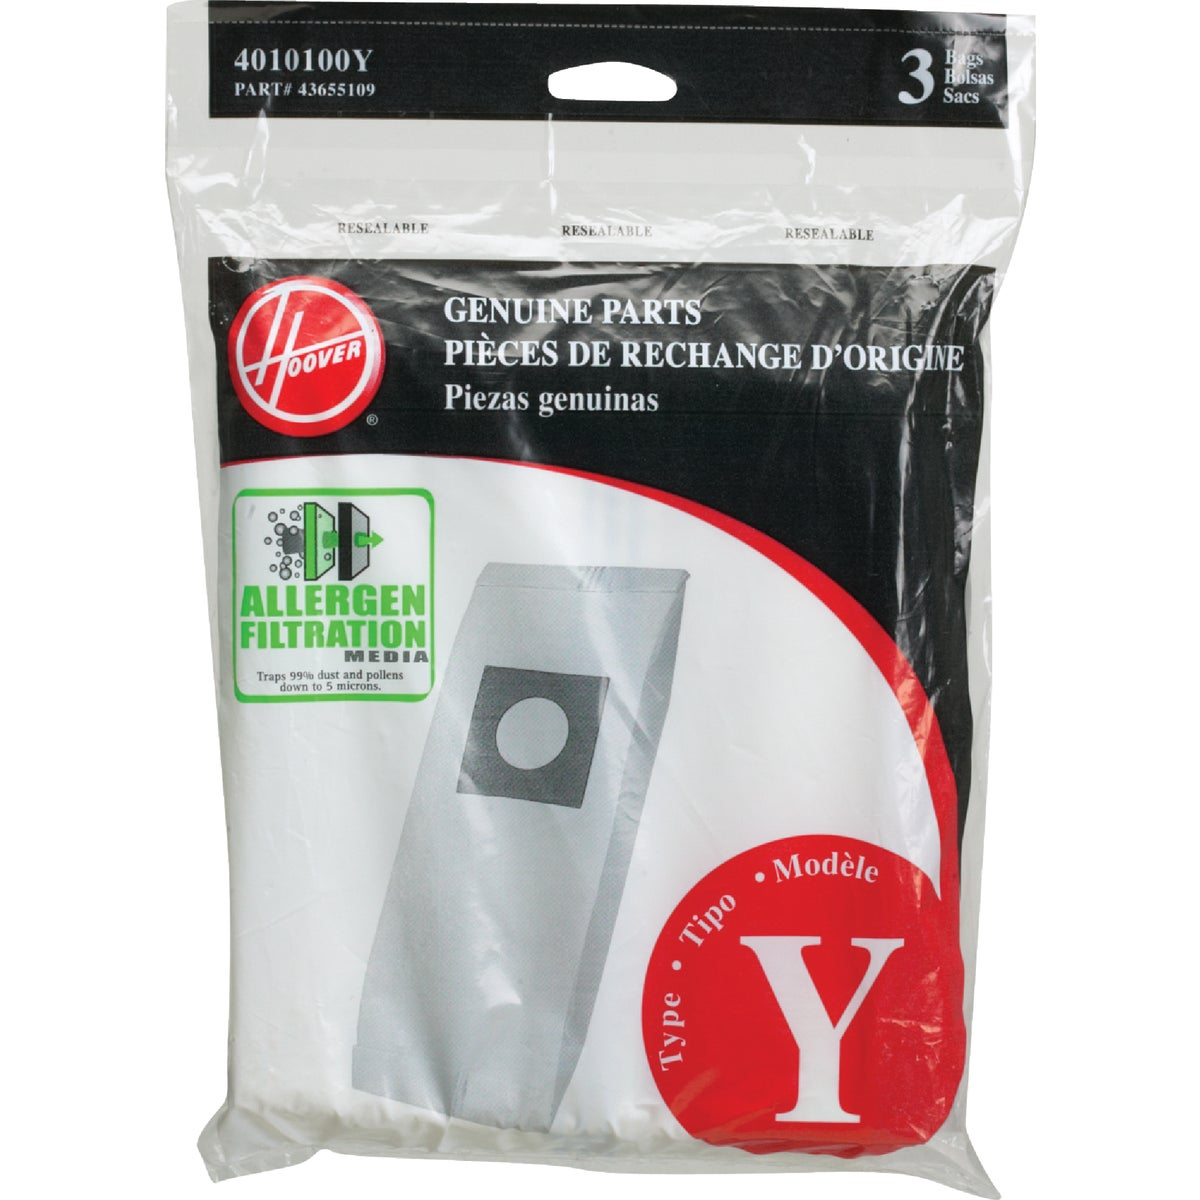 FILTRATION VACUUM BAG - 4010100Y by Hoover Co